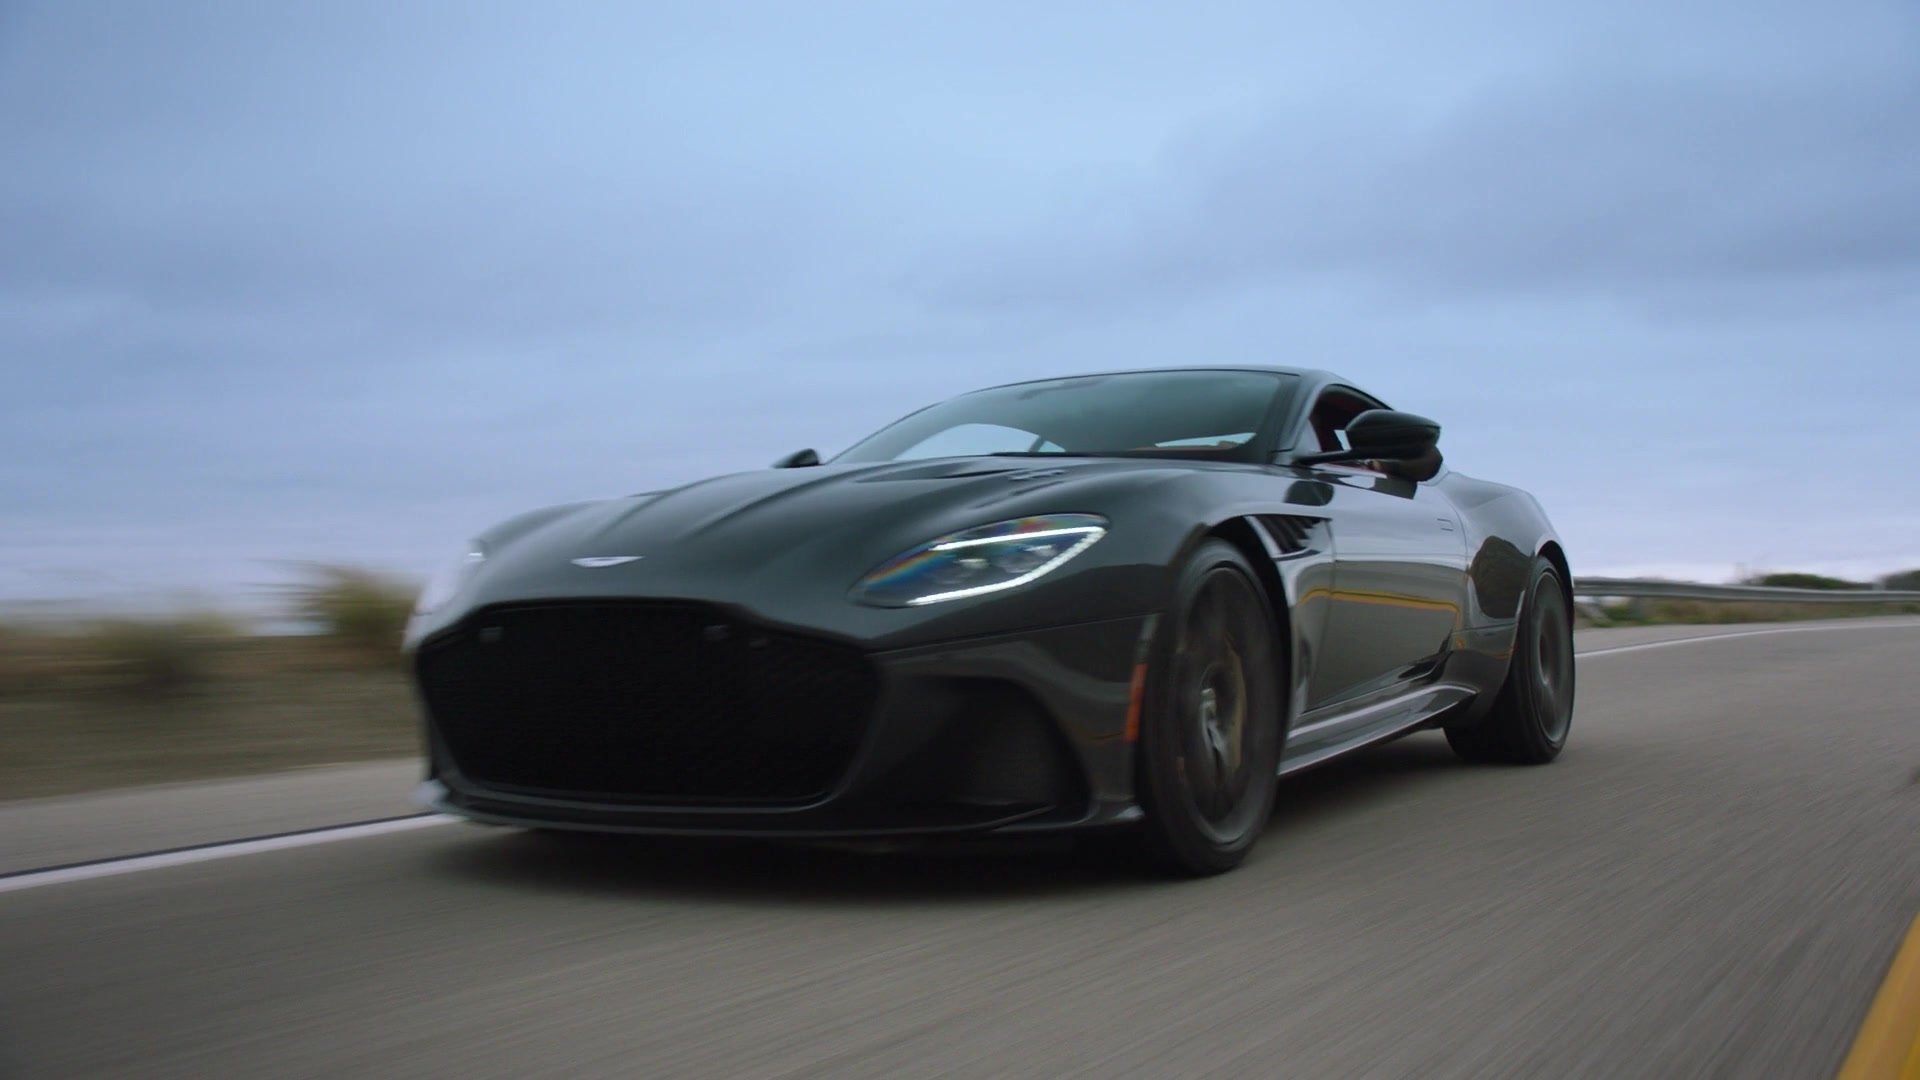 Exotic Car Brands >> Aston Martin Sports Car Driven by Rob Corddry as Joe ...